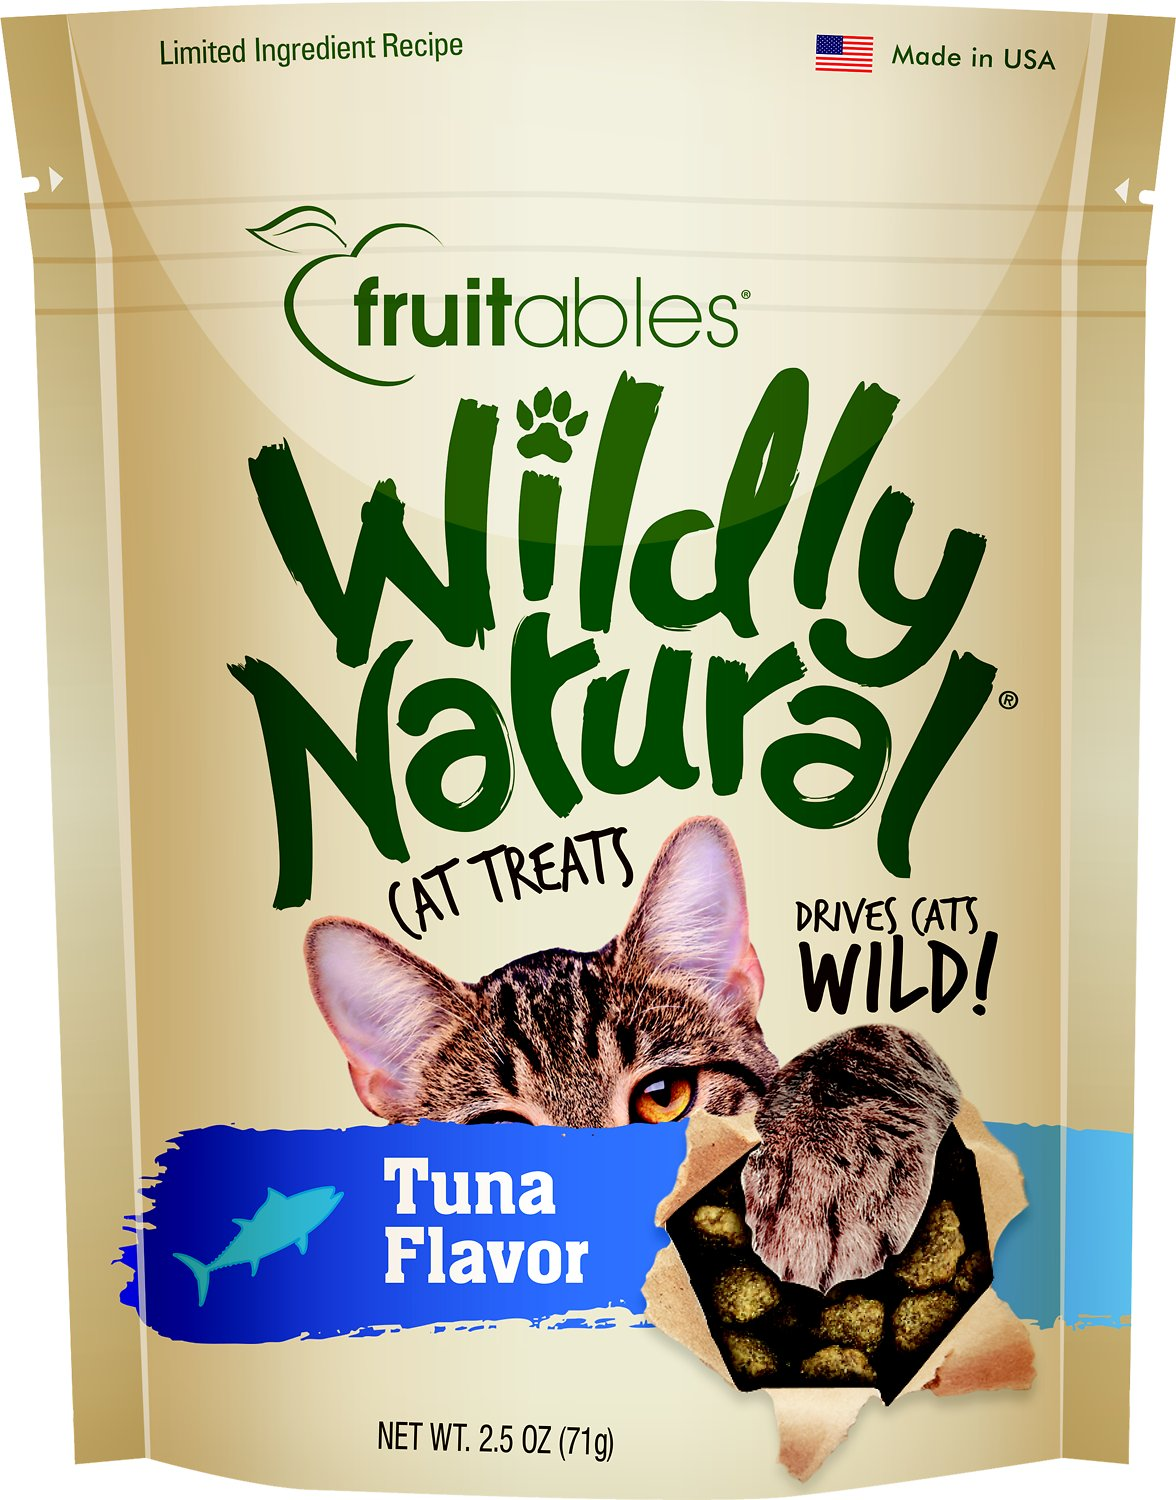 Fruitables Wildly Natural Tuna Flavor Cat Treats, 2.5-oz bag (Weights: 2.56ounces) Image